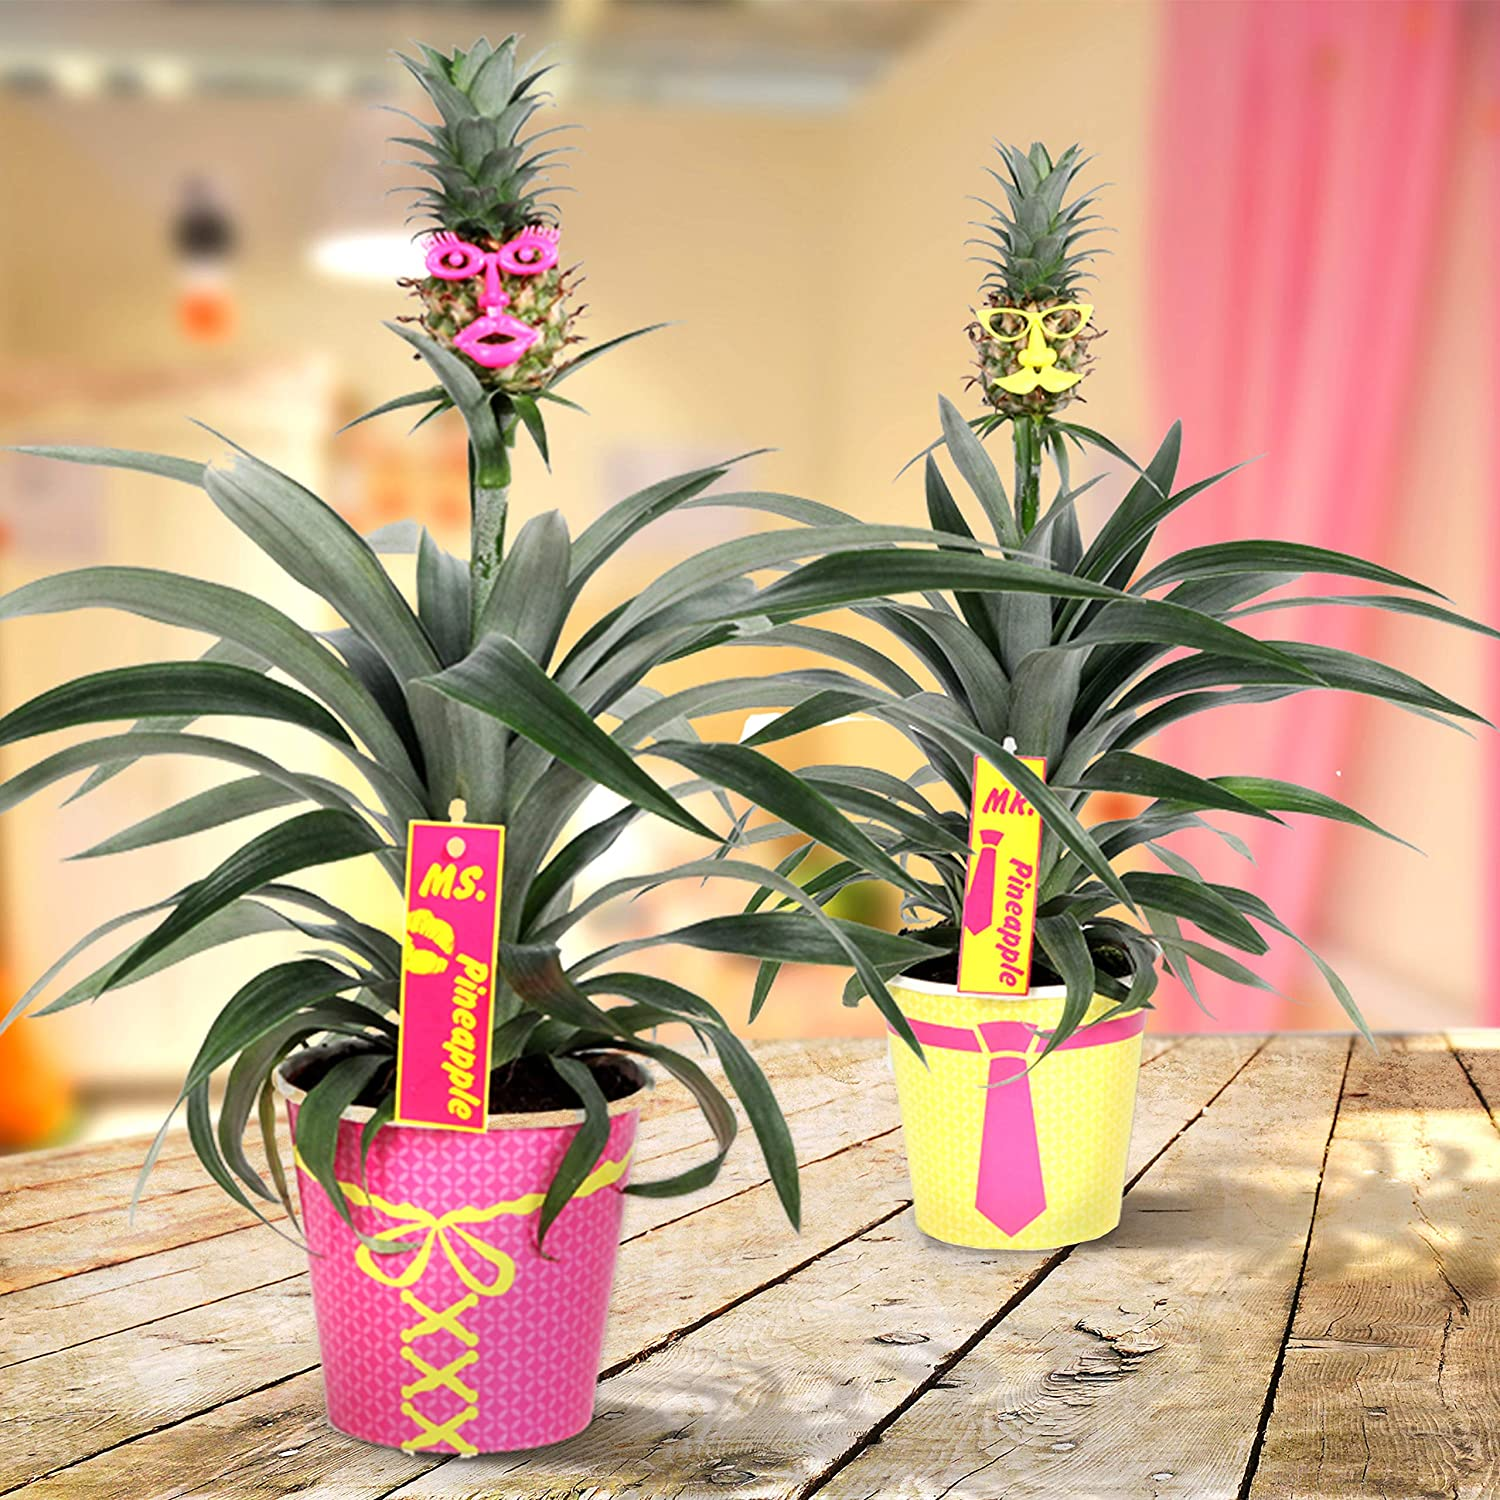 Quality from Holland Fresh from The Grower Pot Diameter 12 cm -Height 38 cm Live Indoor Plant Breasy/®- Bromeliad Pineapple Plant Corona- Live Indoor Plant Growers Pot